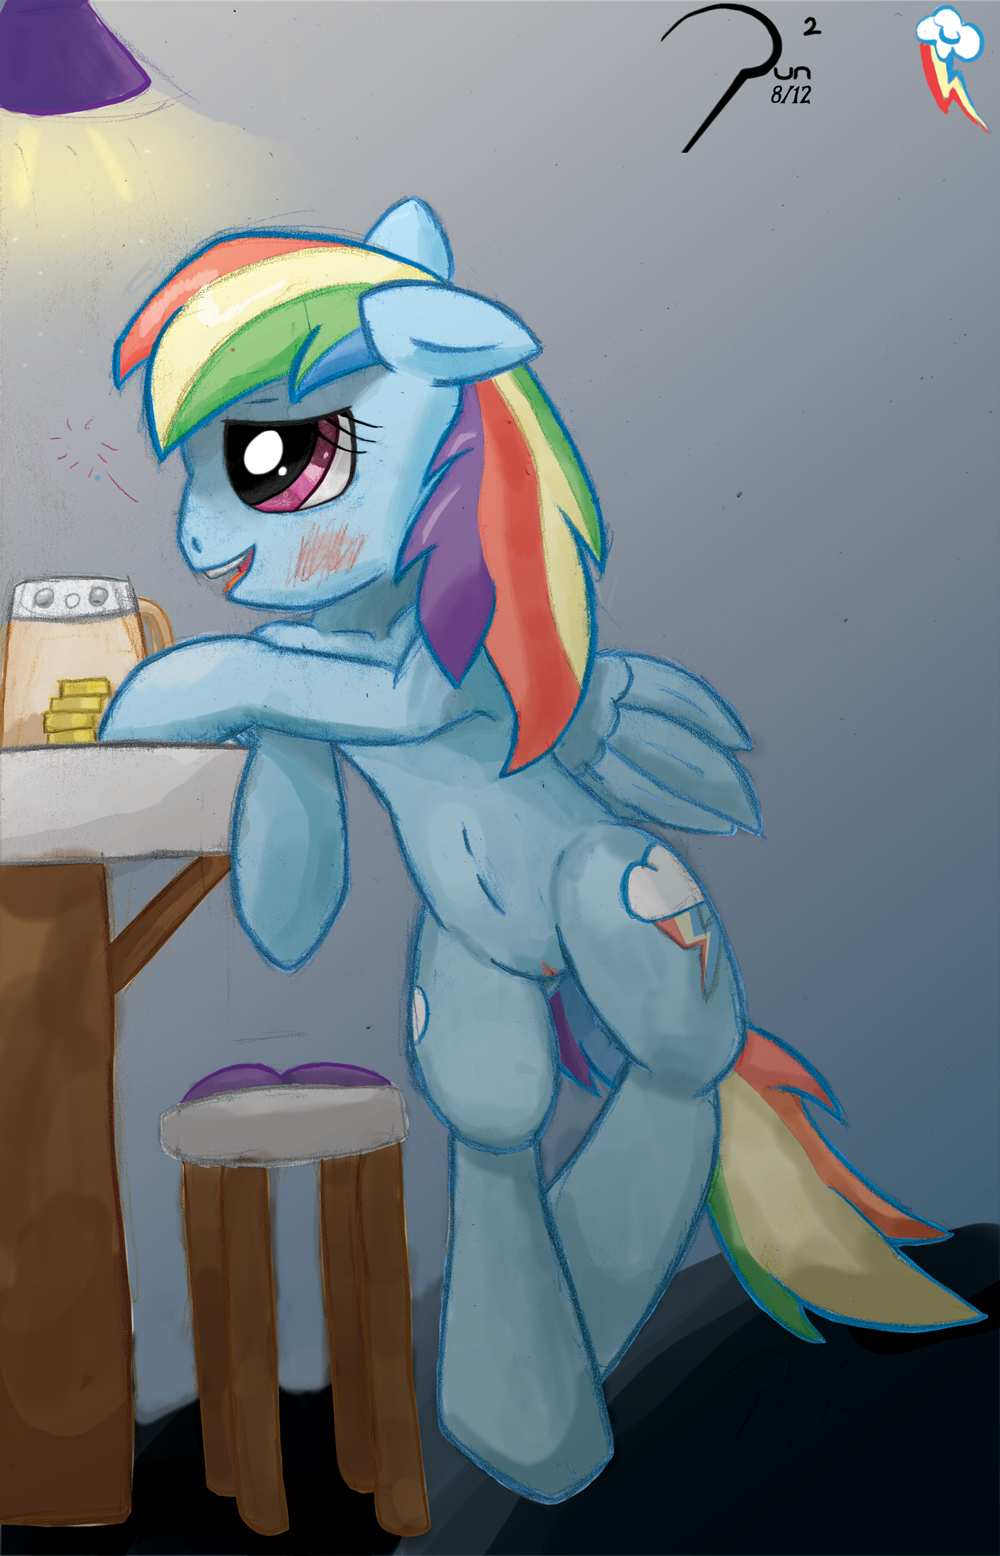 my is magic friendship little pony nude How old is the scout tf2